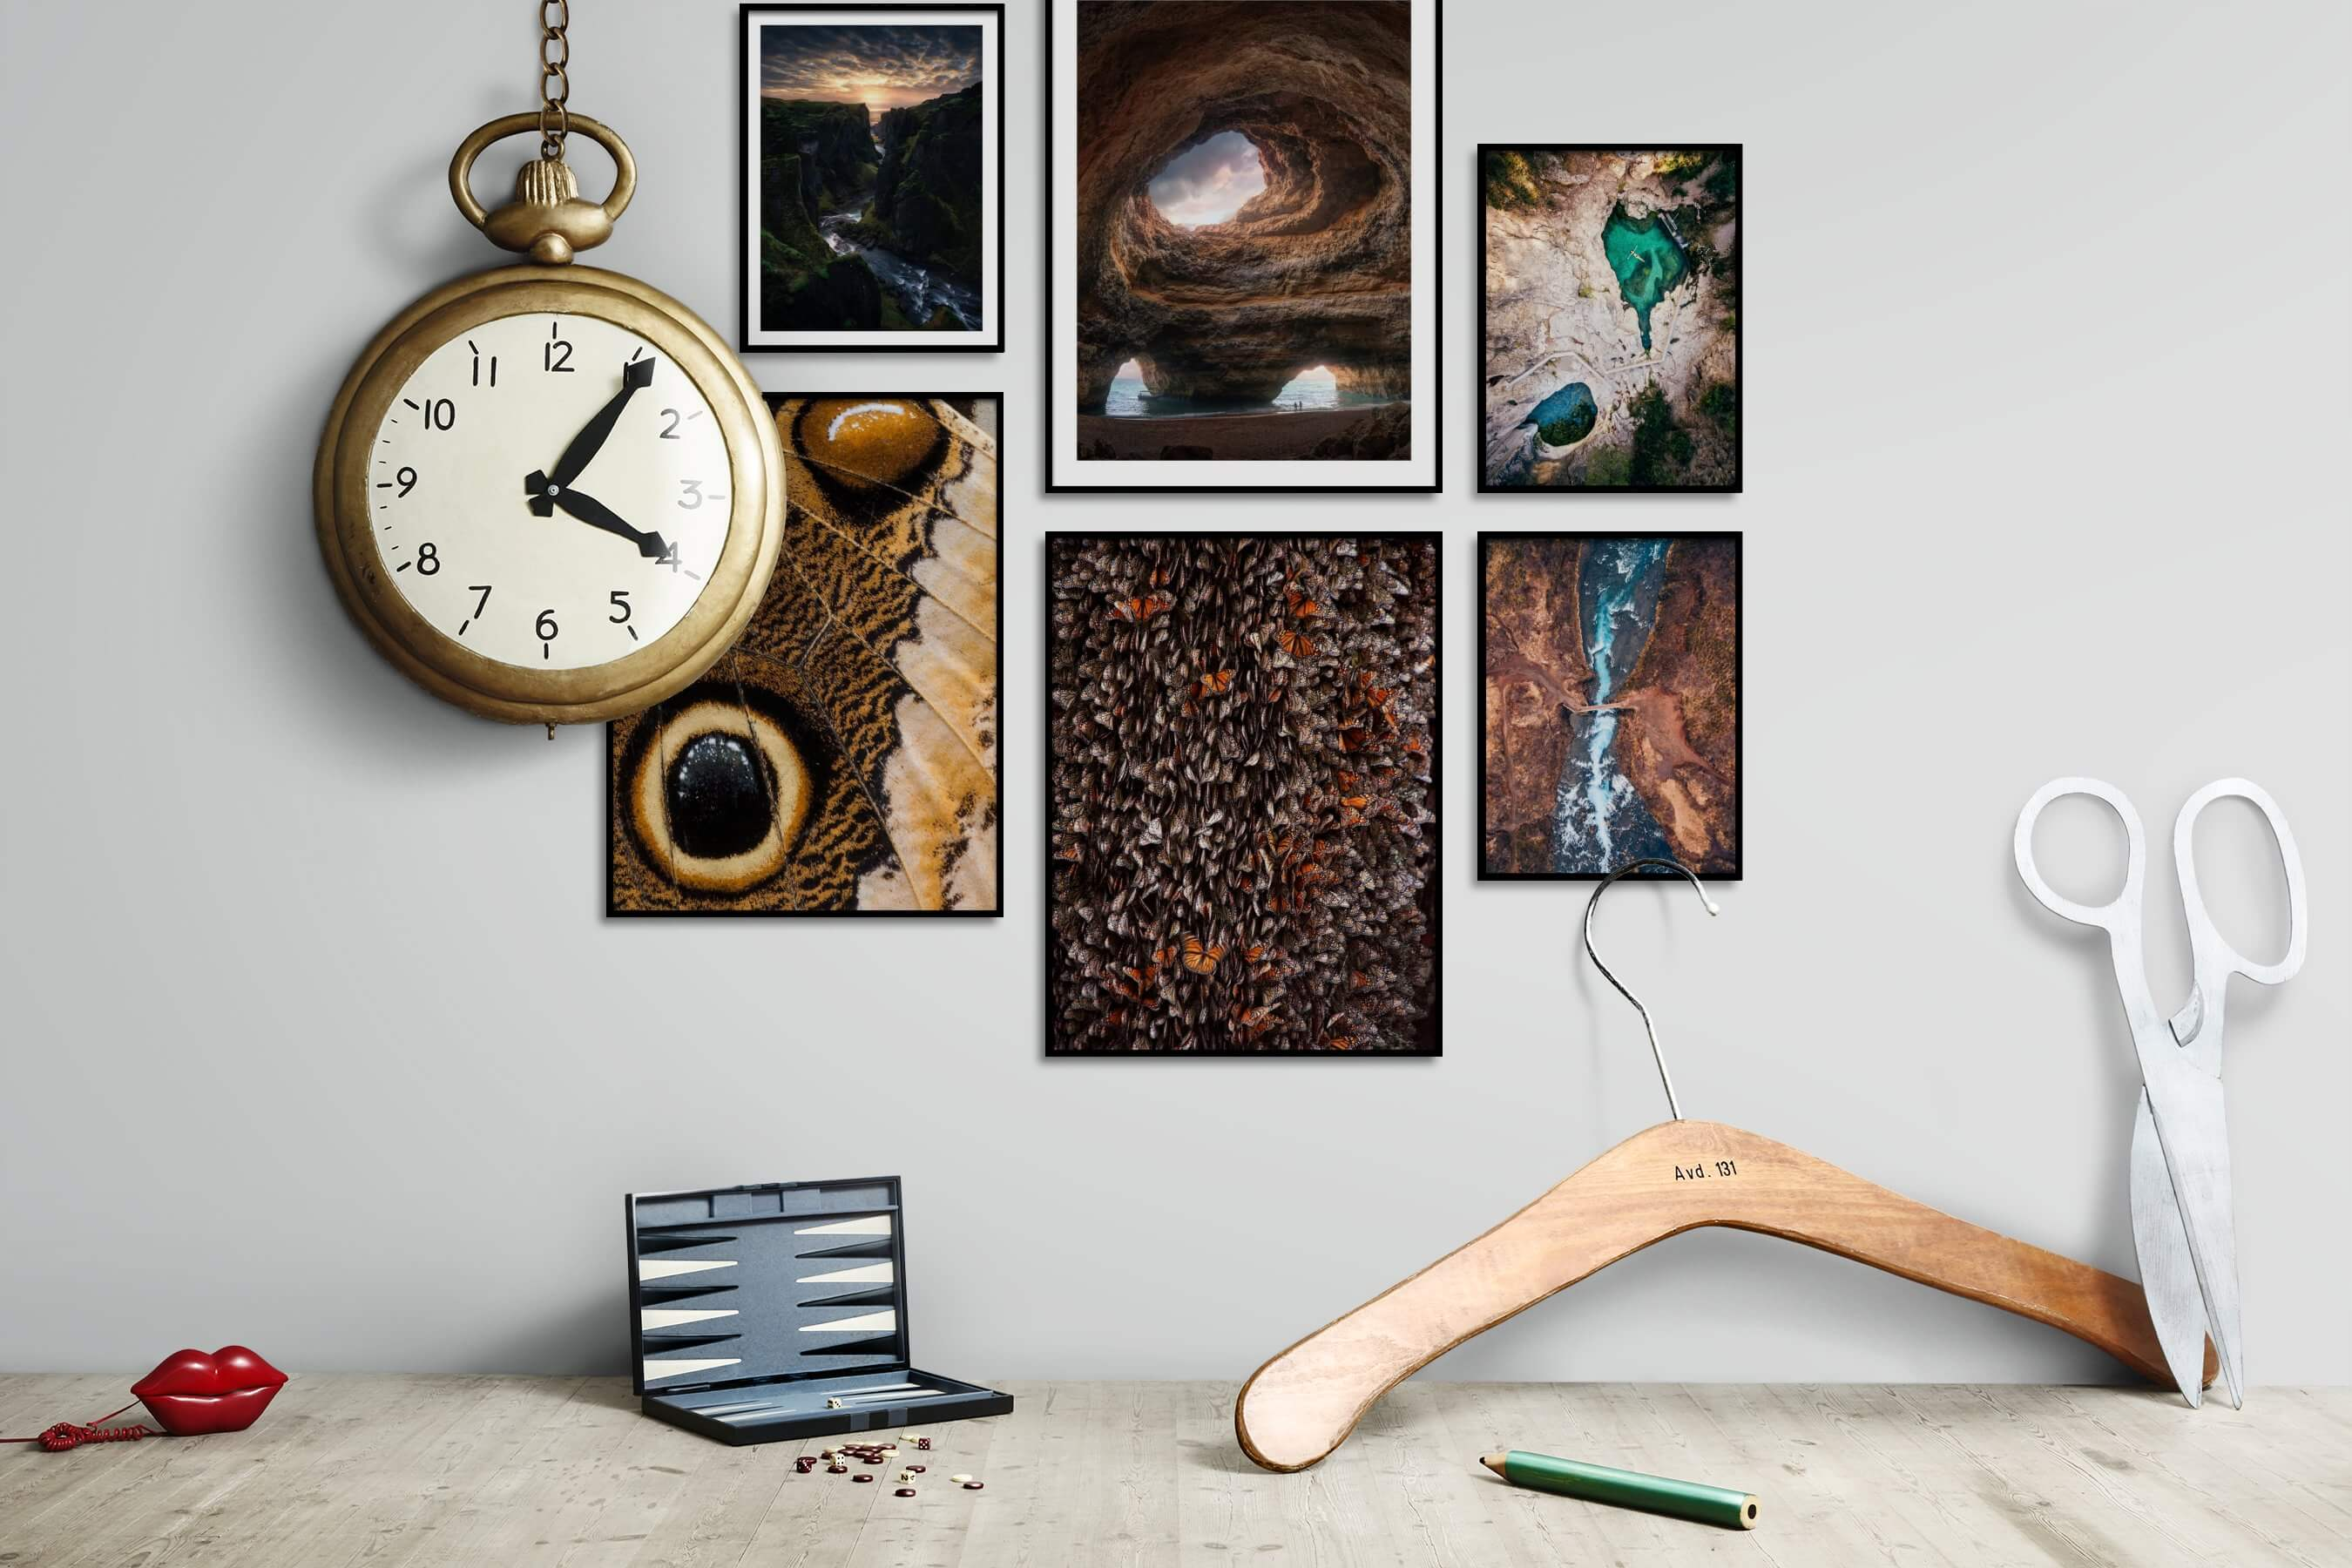 Gallery wall idea with six framed pictures arranged on a wall depicting Nature, Beach & Water, For the Maximalist, Animals, Mindfulness, and For the Moderate